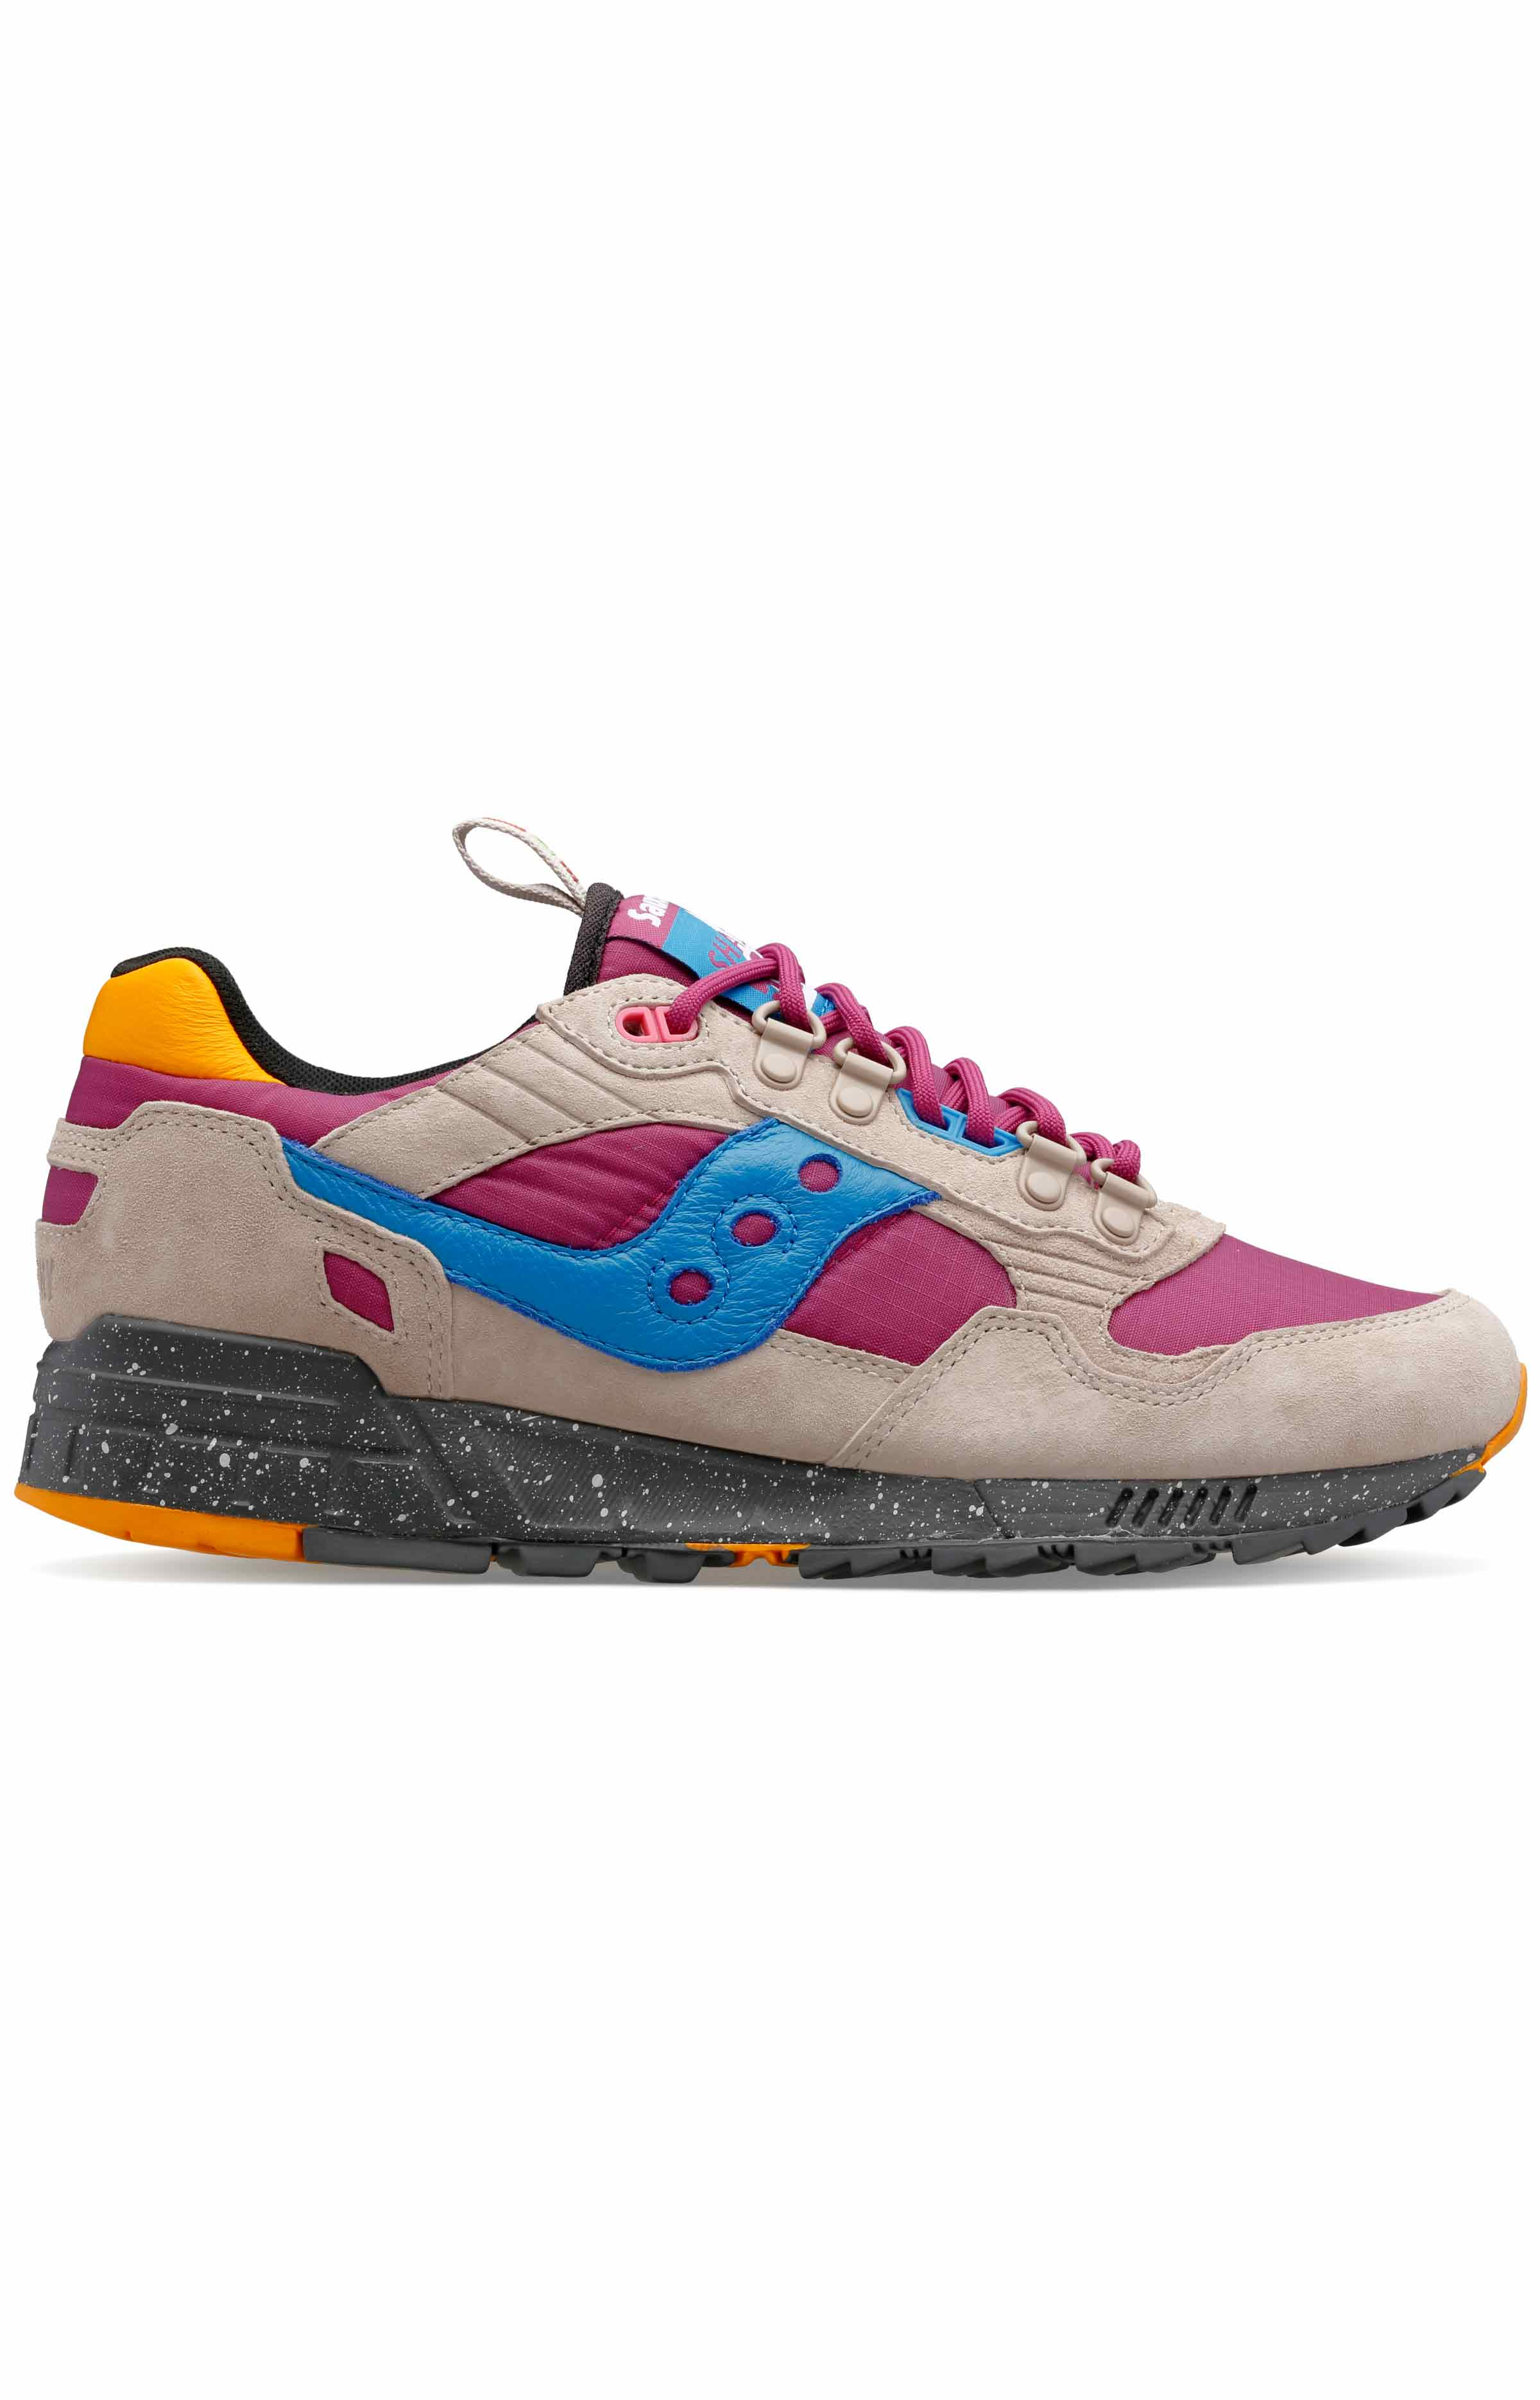 (S70559-2) Shadow 5000 Shoes - Astro/Air